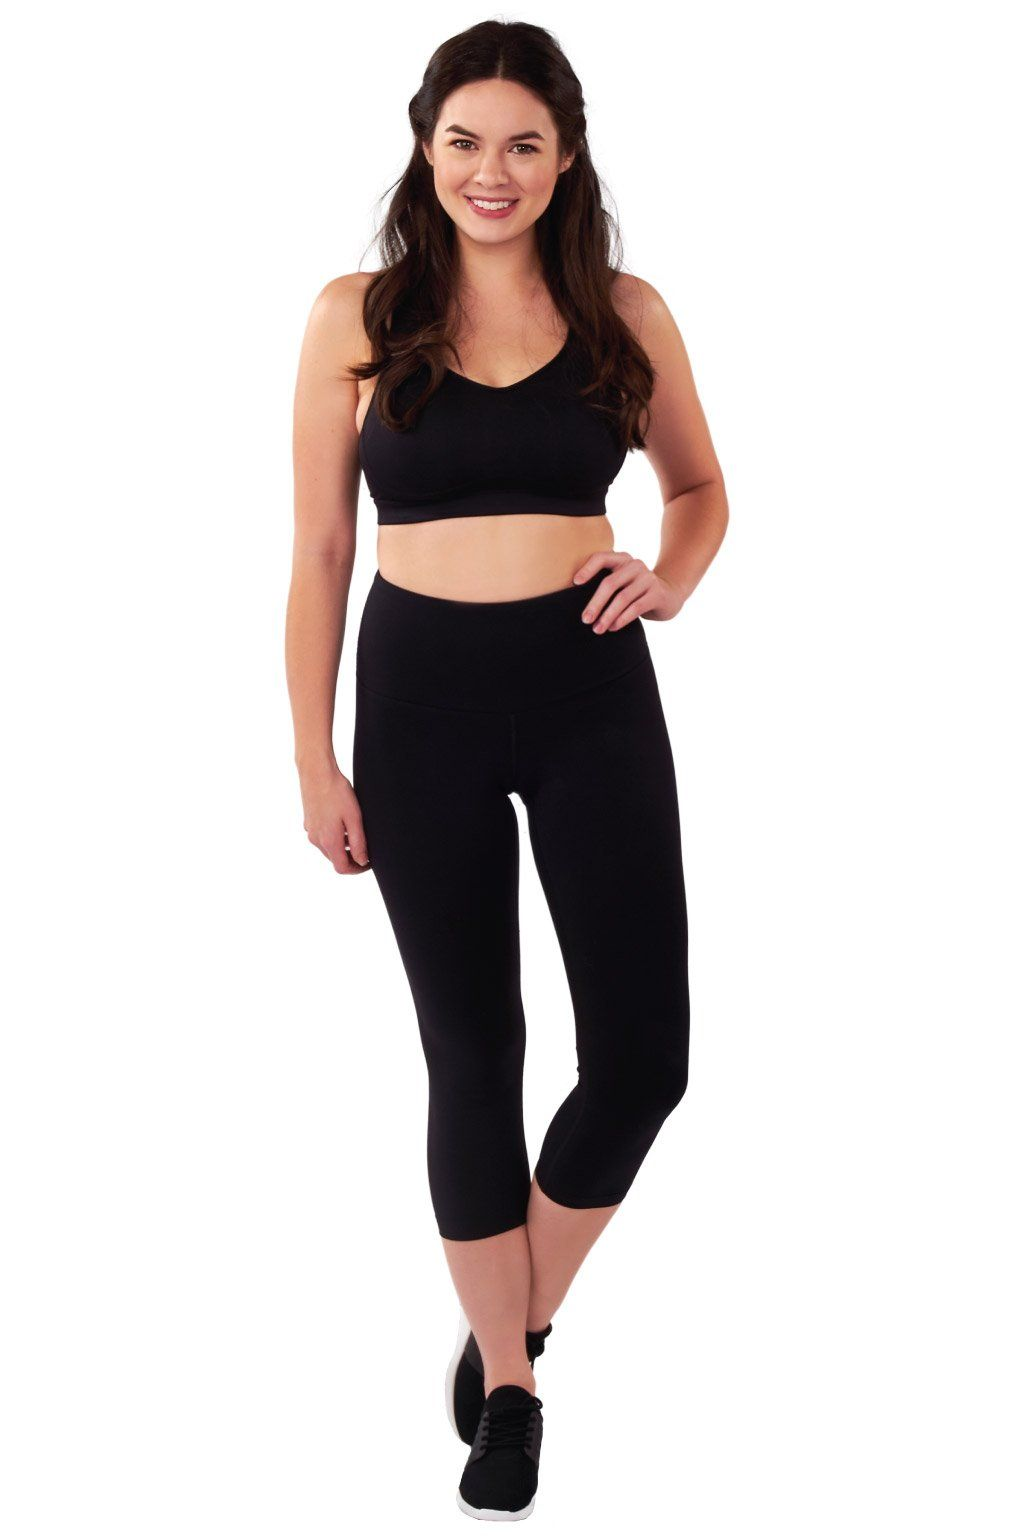 ba35892d7 Supportive premium leggings with a unique compression panel for postpartum  recovery. These are perfect to wear right after your baby arrives and will  make ...